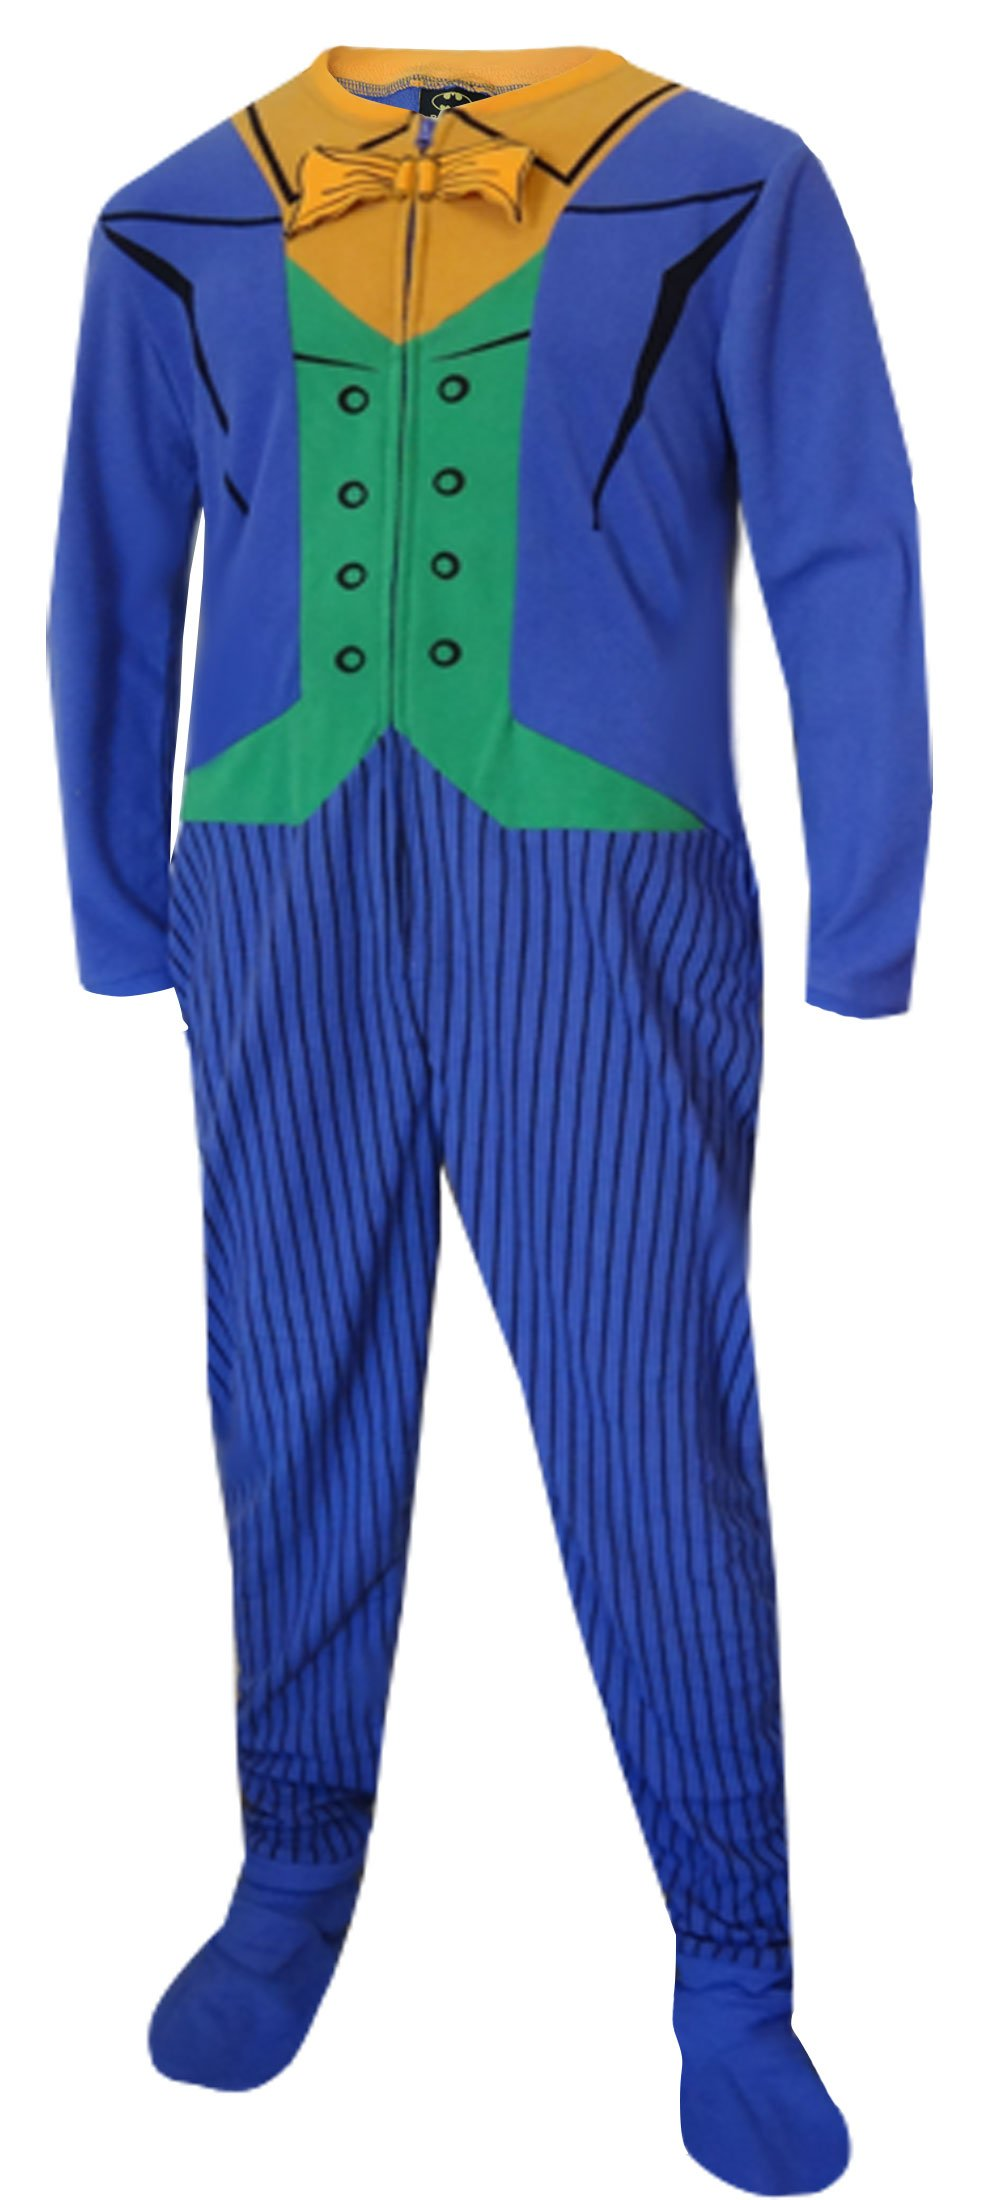 Batman's The Joker Fleece Onesie Footie Pajama for men